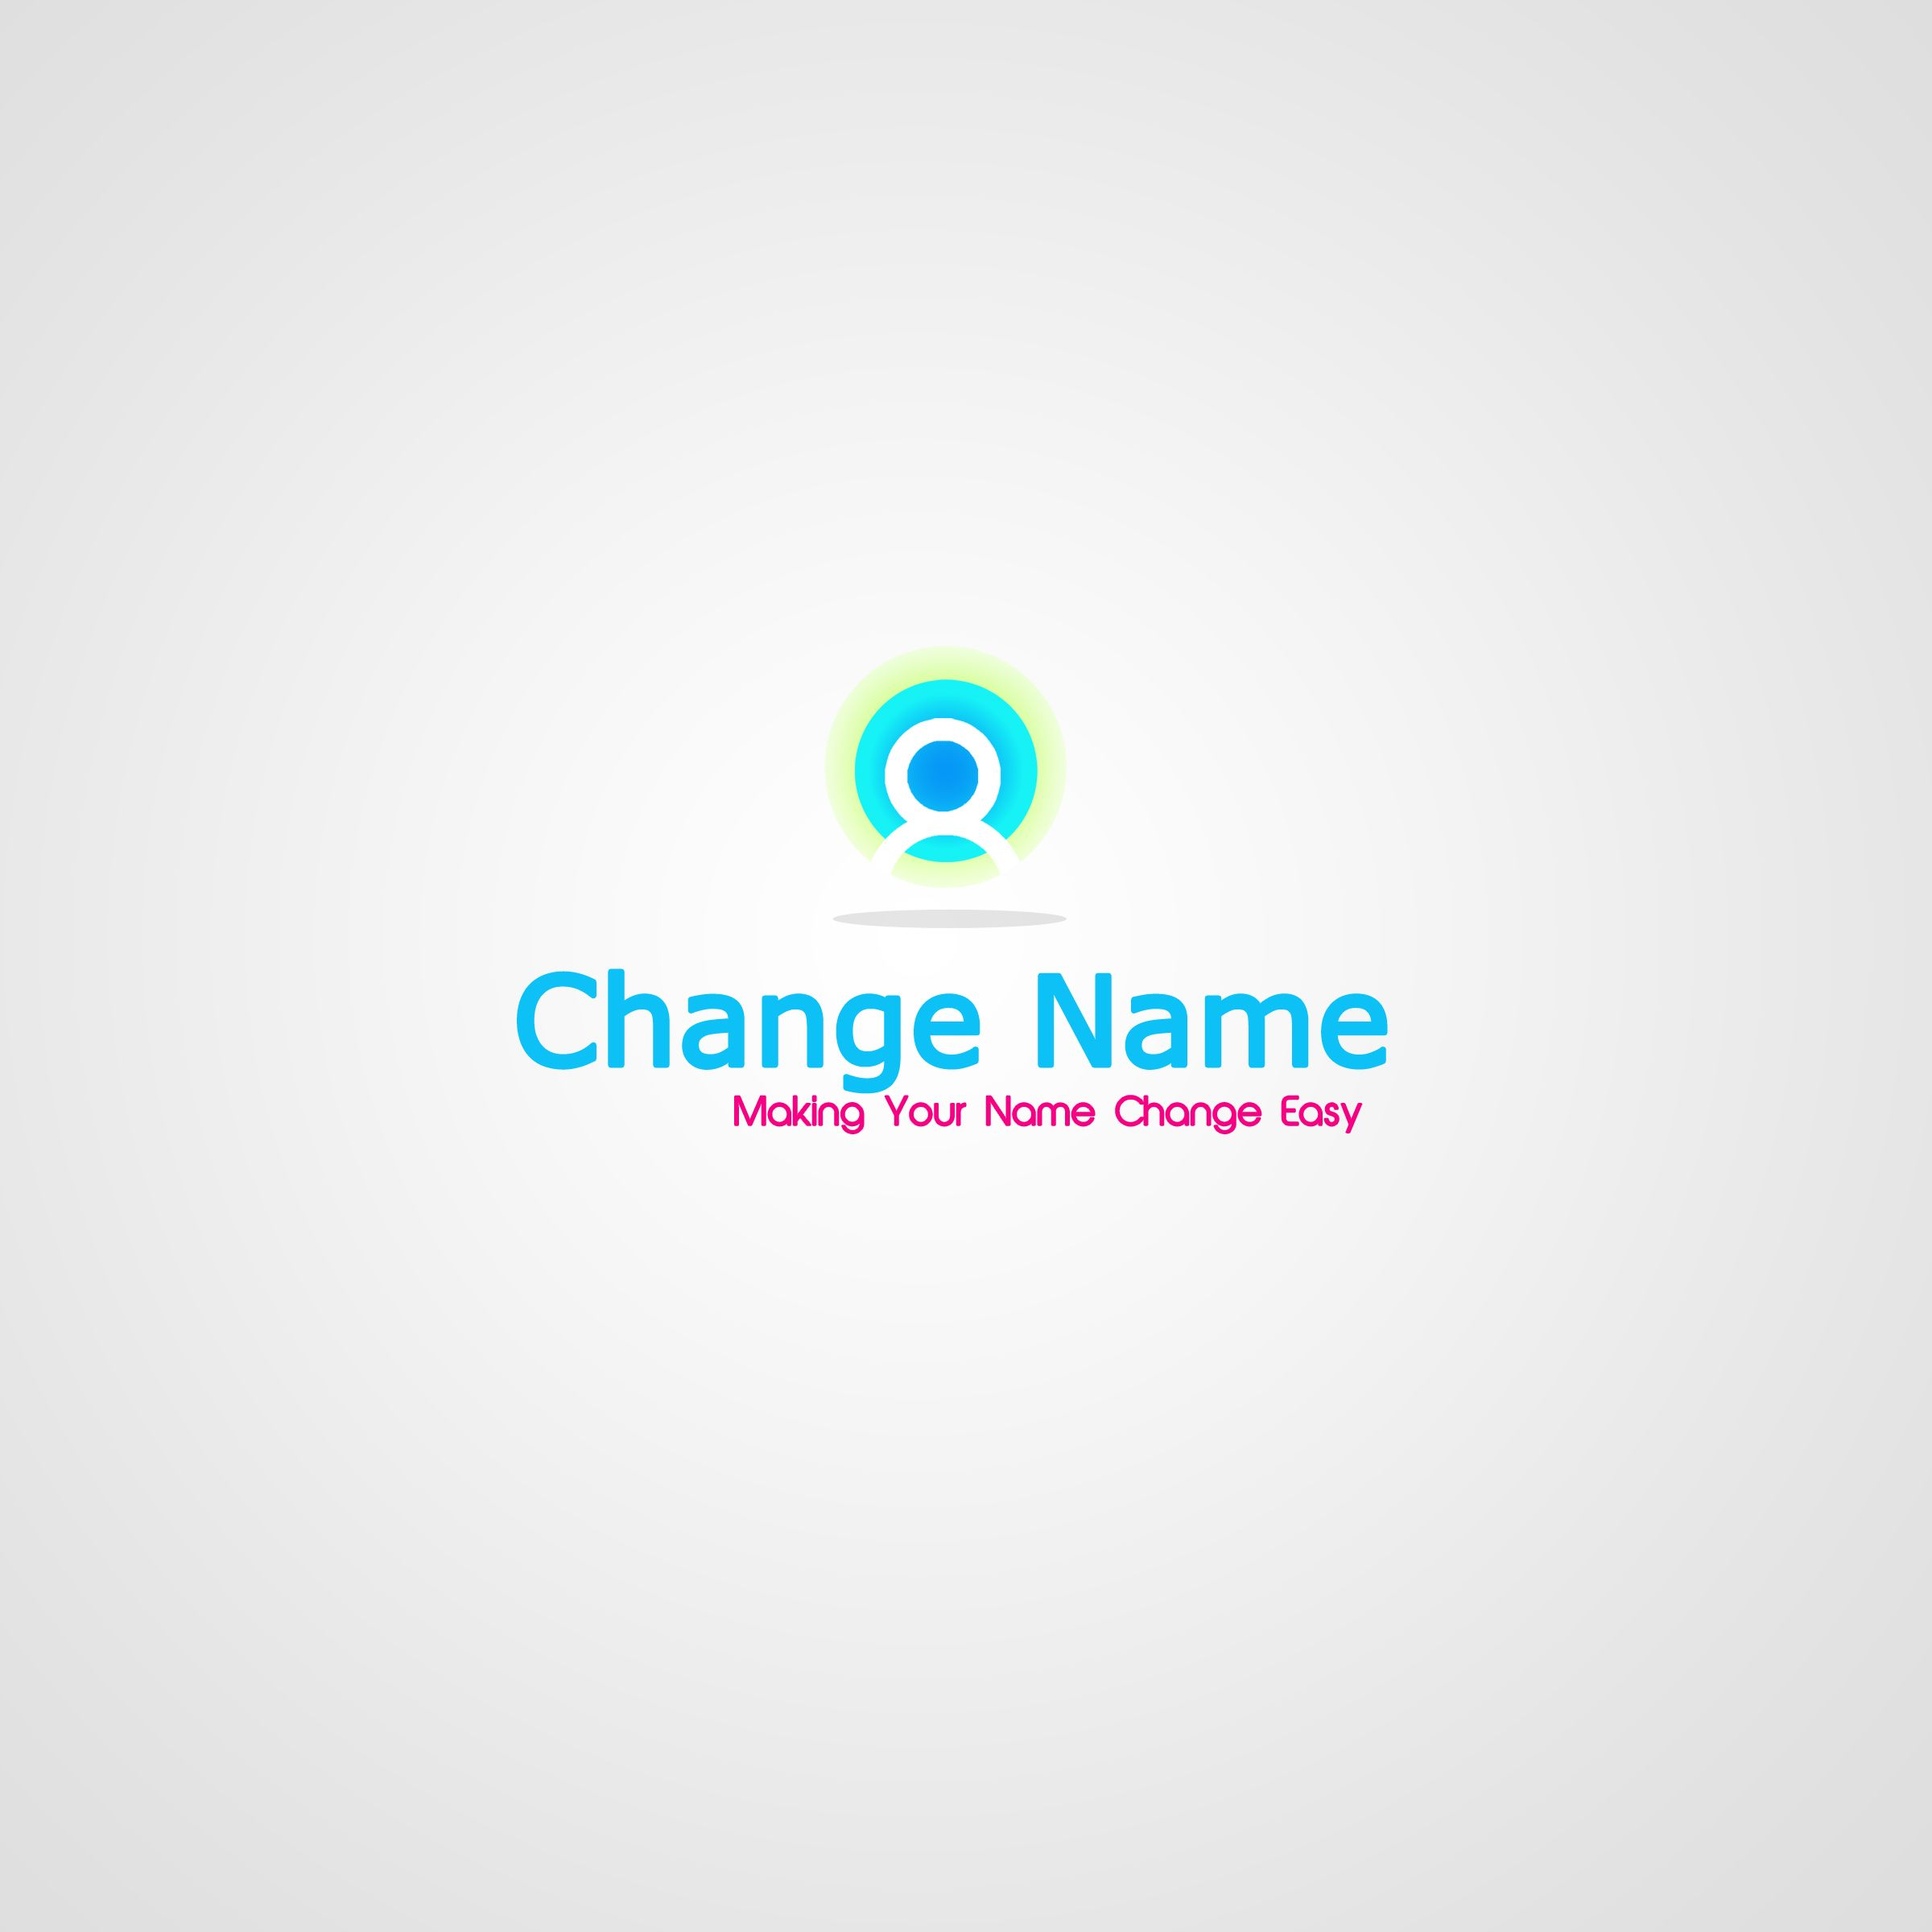 Camarena #LogoDesign for Change Name.  This is one of our samples from our work to previous clients.  See more in www.camarenalogowebdesign.com